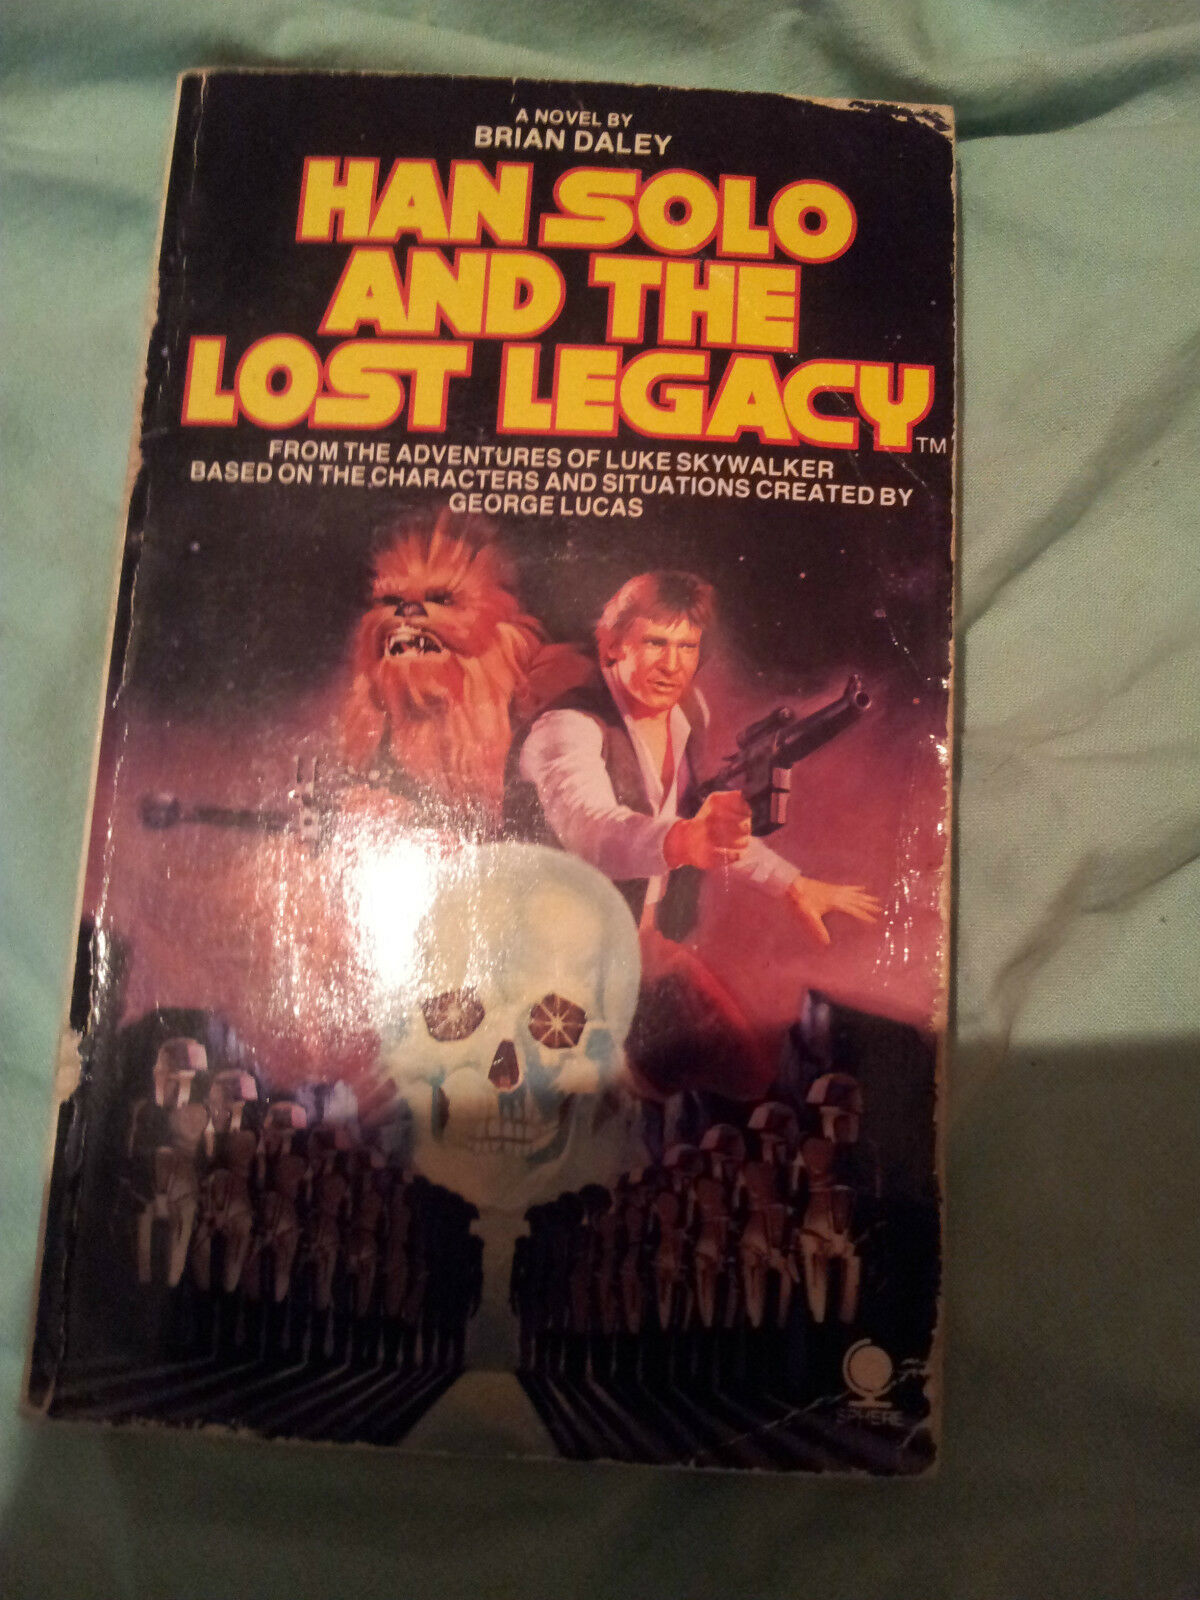 Han Solo and the Lost Legacy (Brian Daley, 1980) Book Club Edition, Hardcover